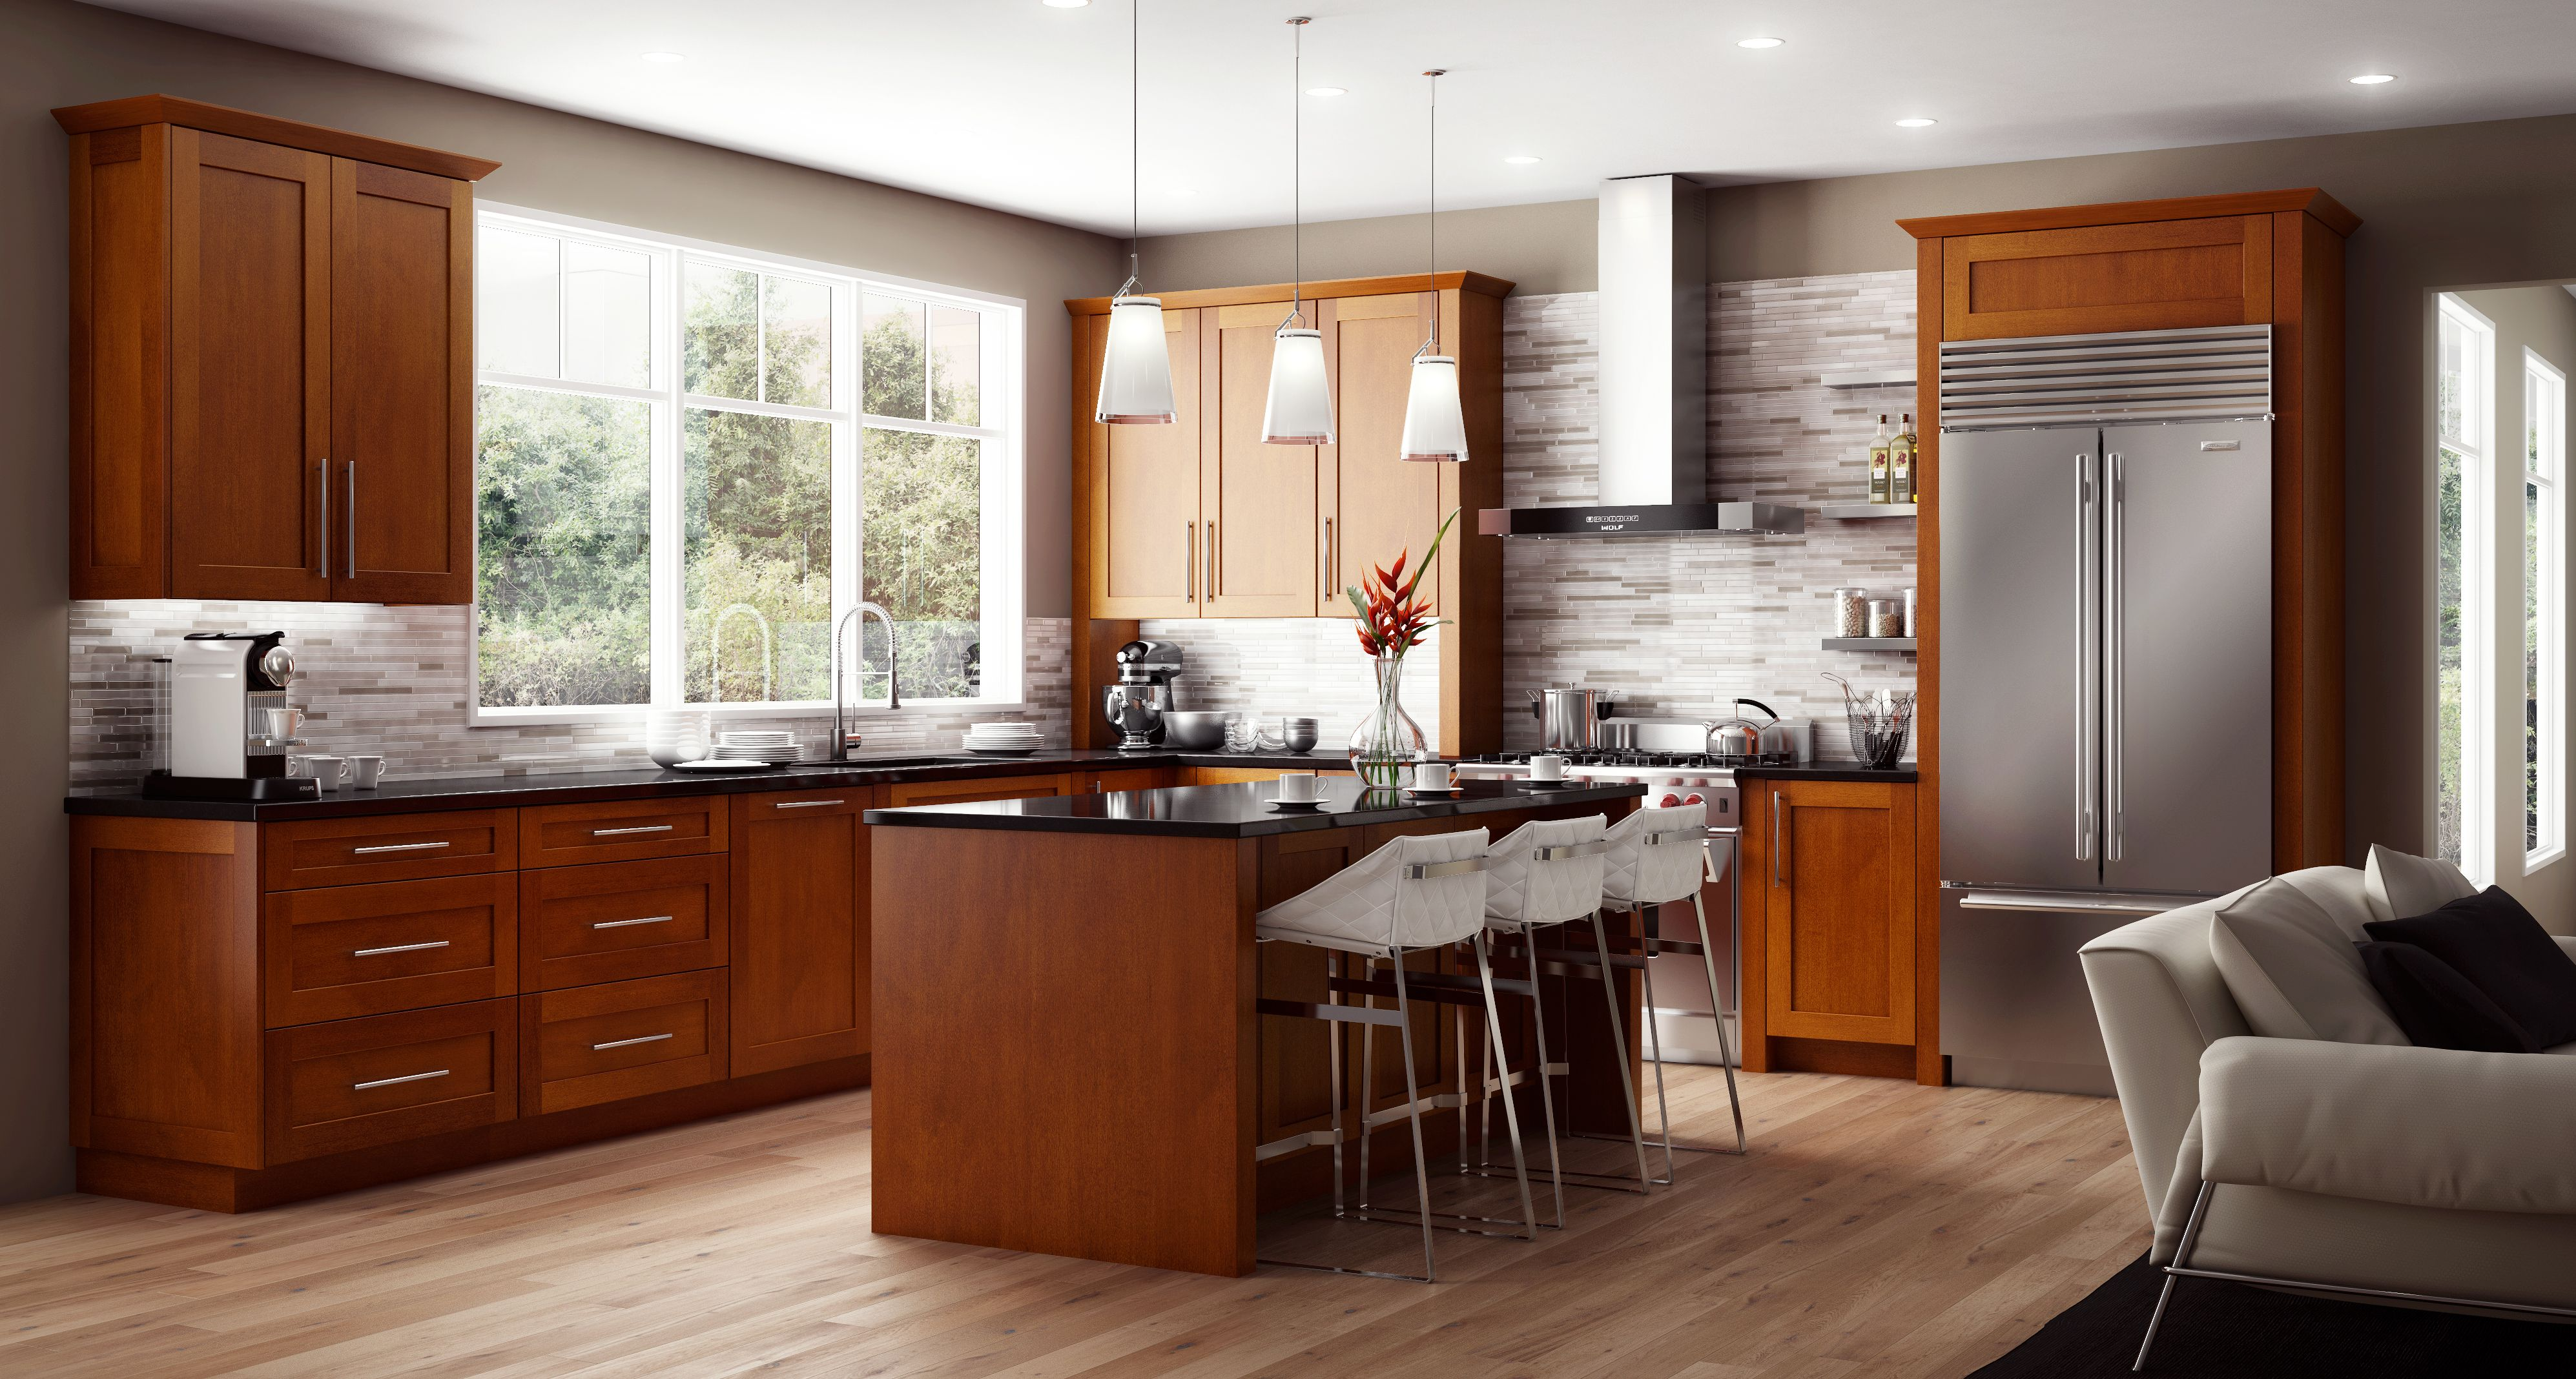 Cnc Elegant Nutmeg The Name Says It All Perfect For Either Traditional Or Contemporar Kitchen Cabinets Prices Modern Shaker Kitchen Shaker Kitchen Cabinets